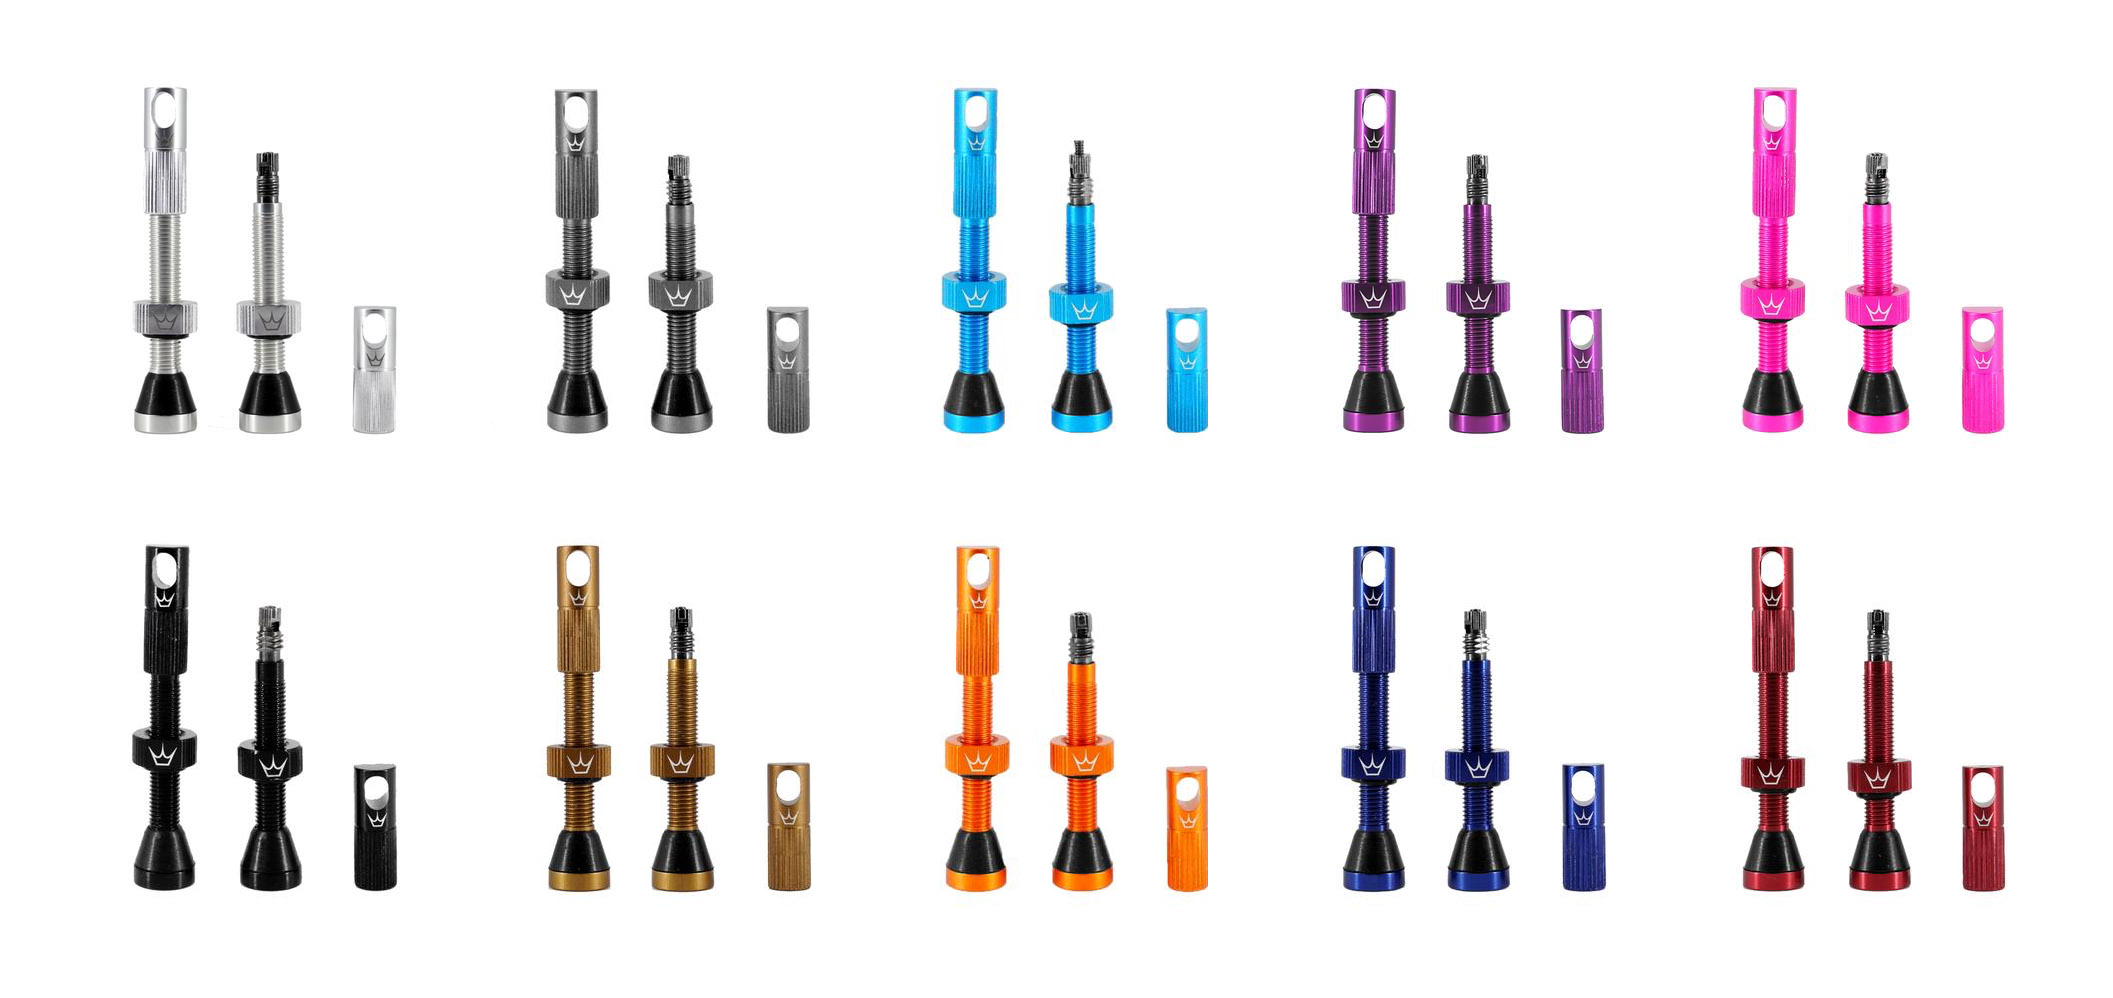 Peaty's x Chris King Tubeless Valves are a match made in anodization heaven